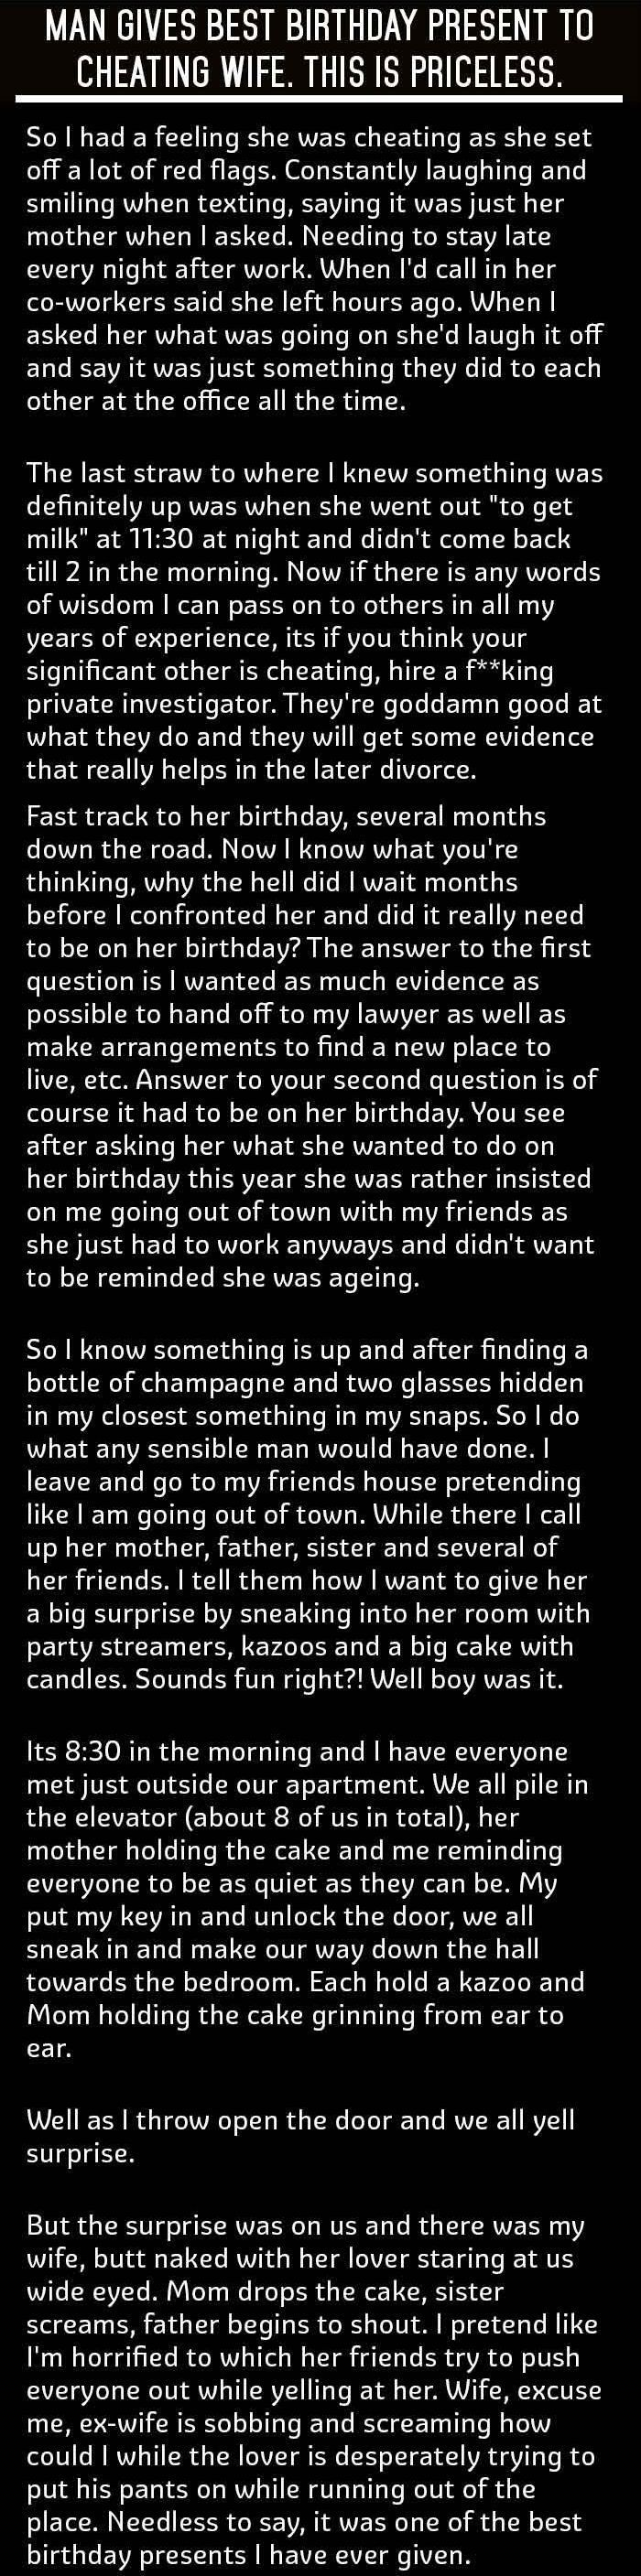 Man Gives Best Birthday Present To Cheating Wife. This Is Priceless.